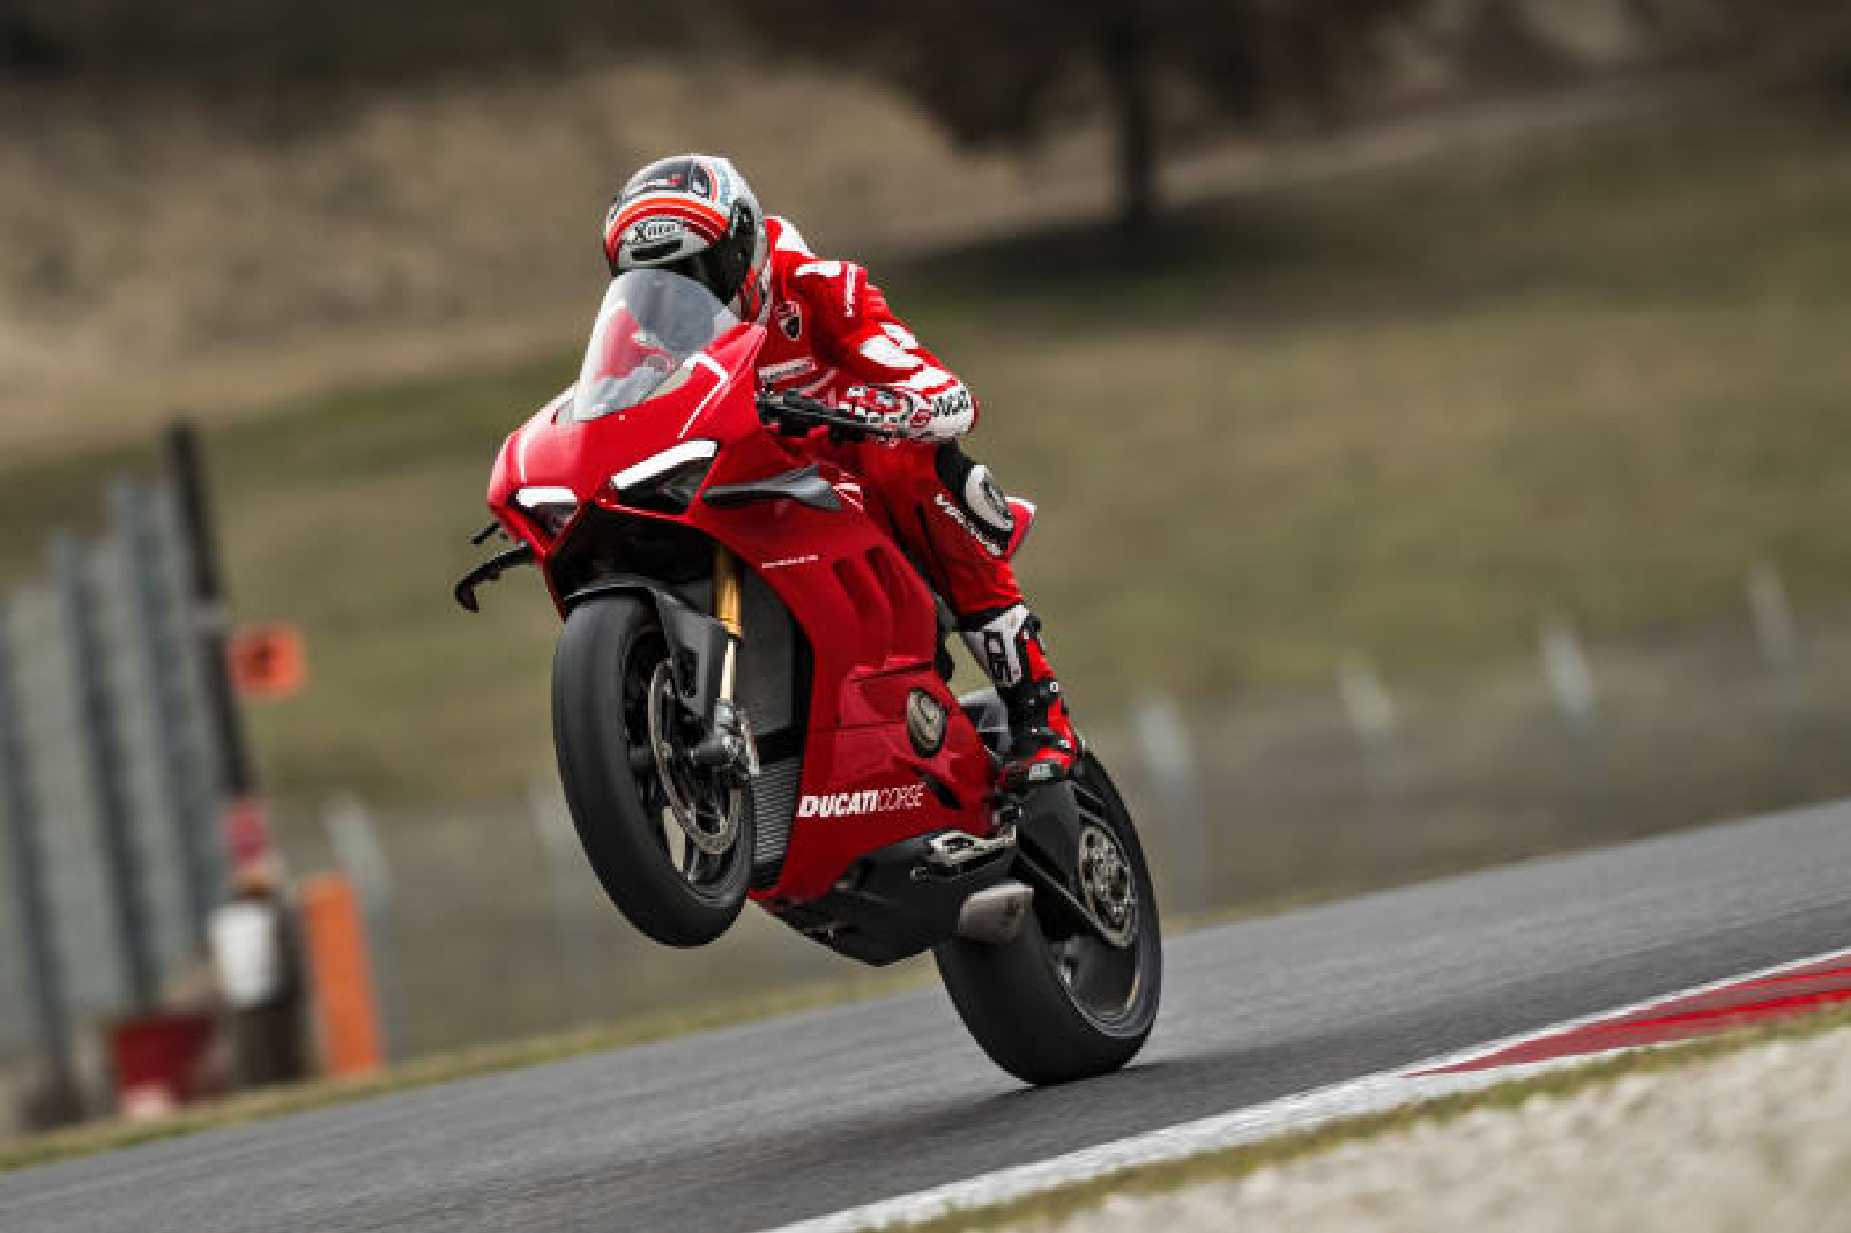 37_ducati-panigale-v4-r-action_uc69274_mid.jpg